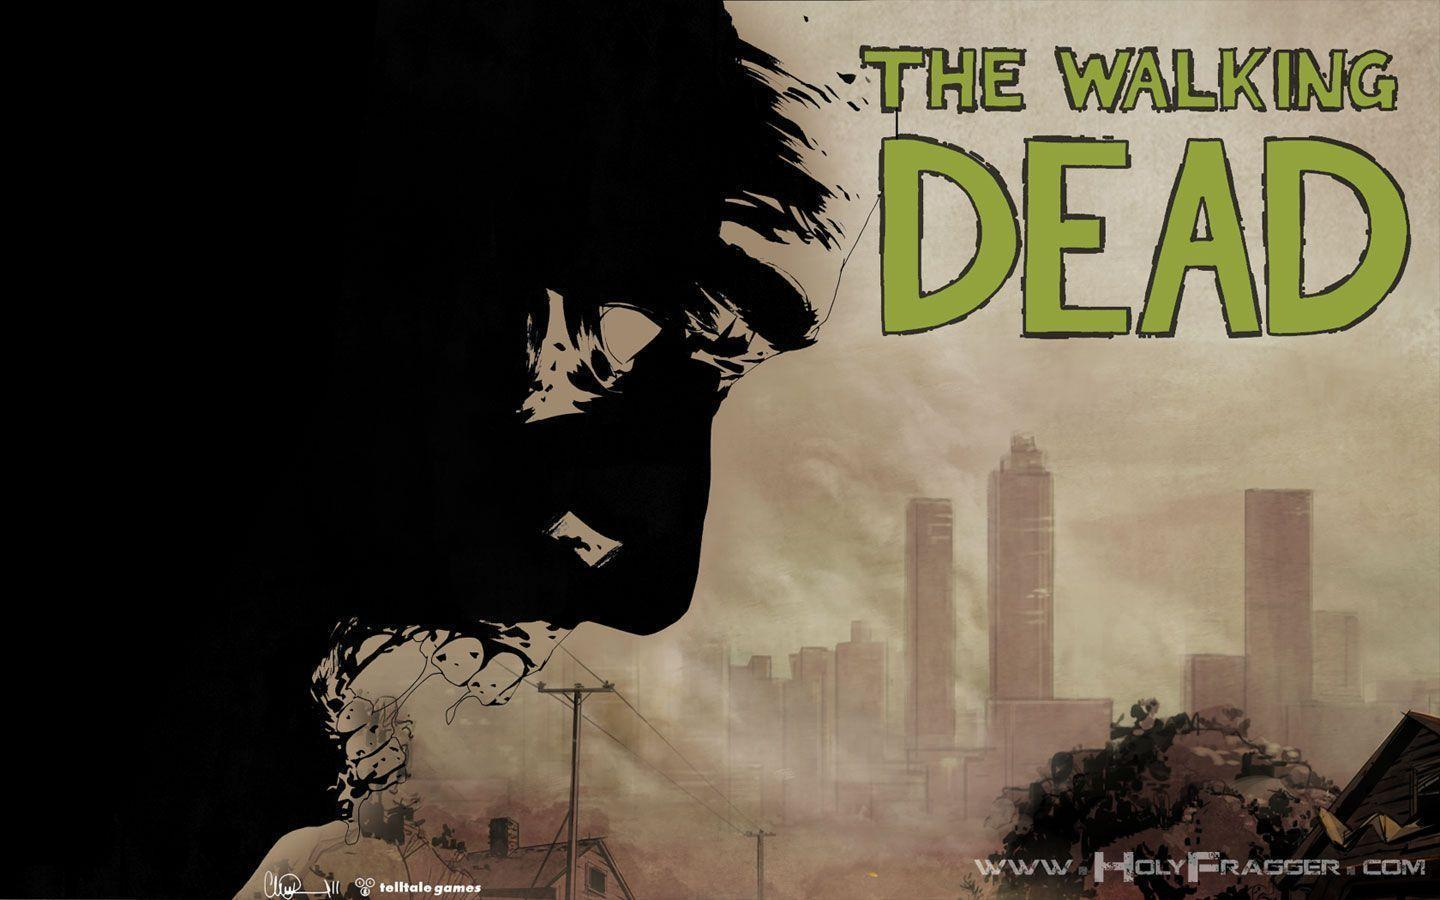 The Walking Dead Wallpaper Mac